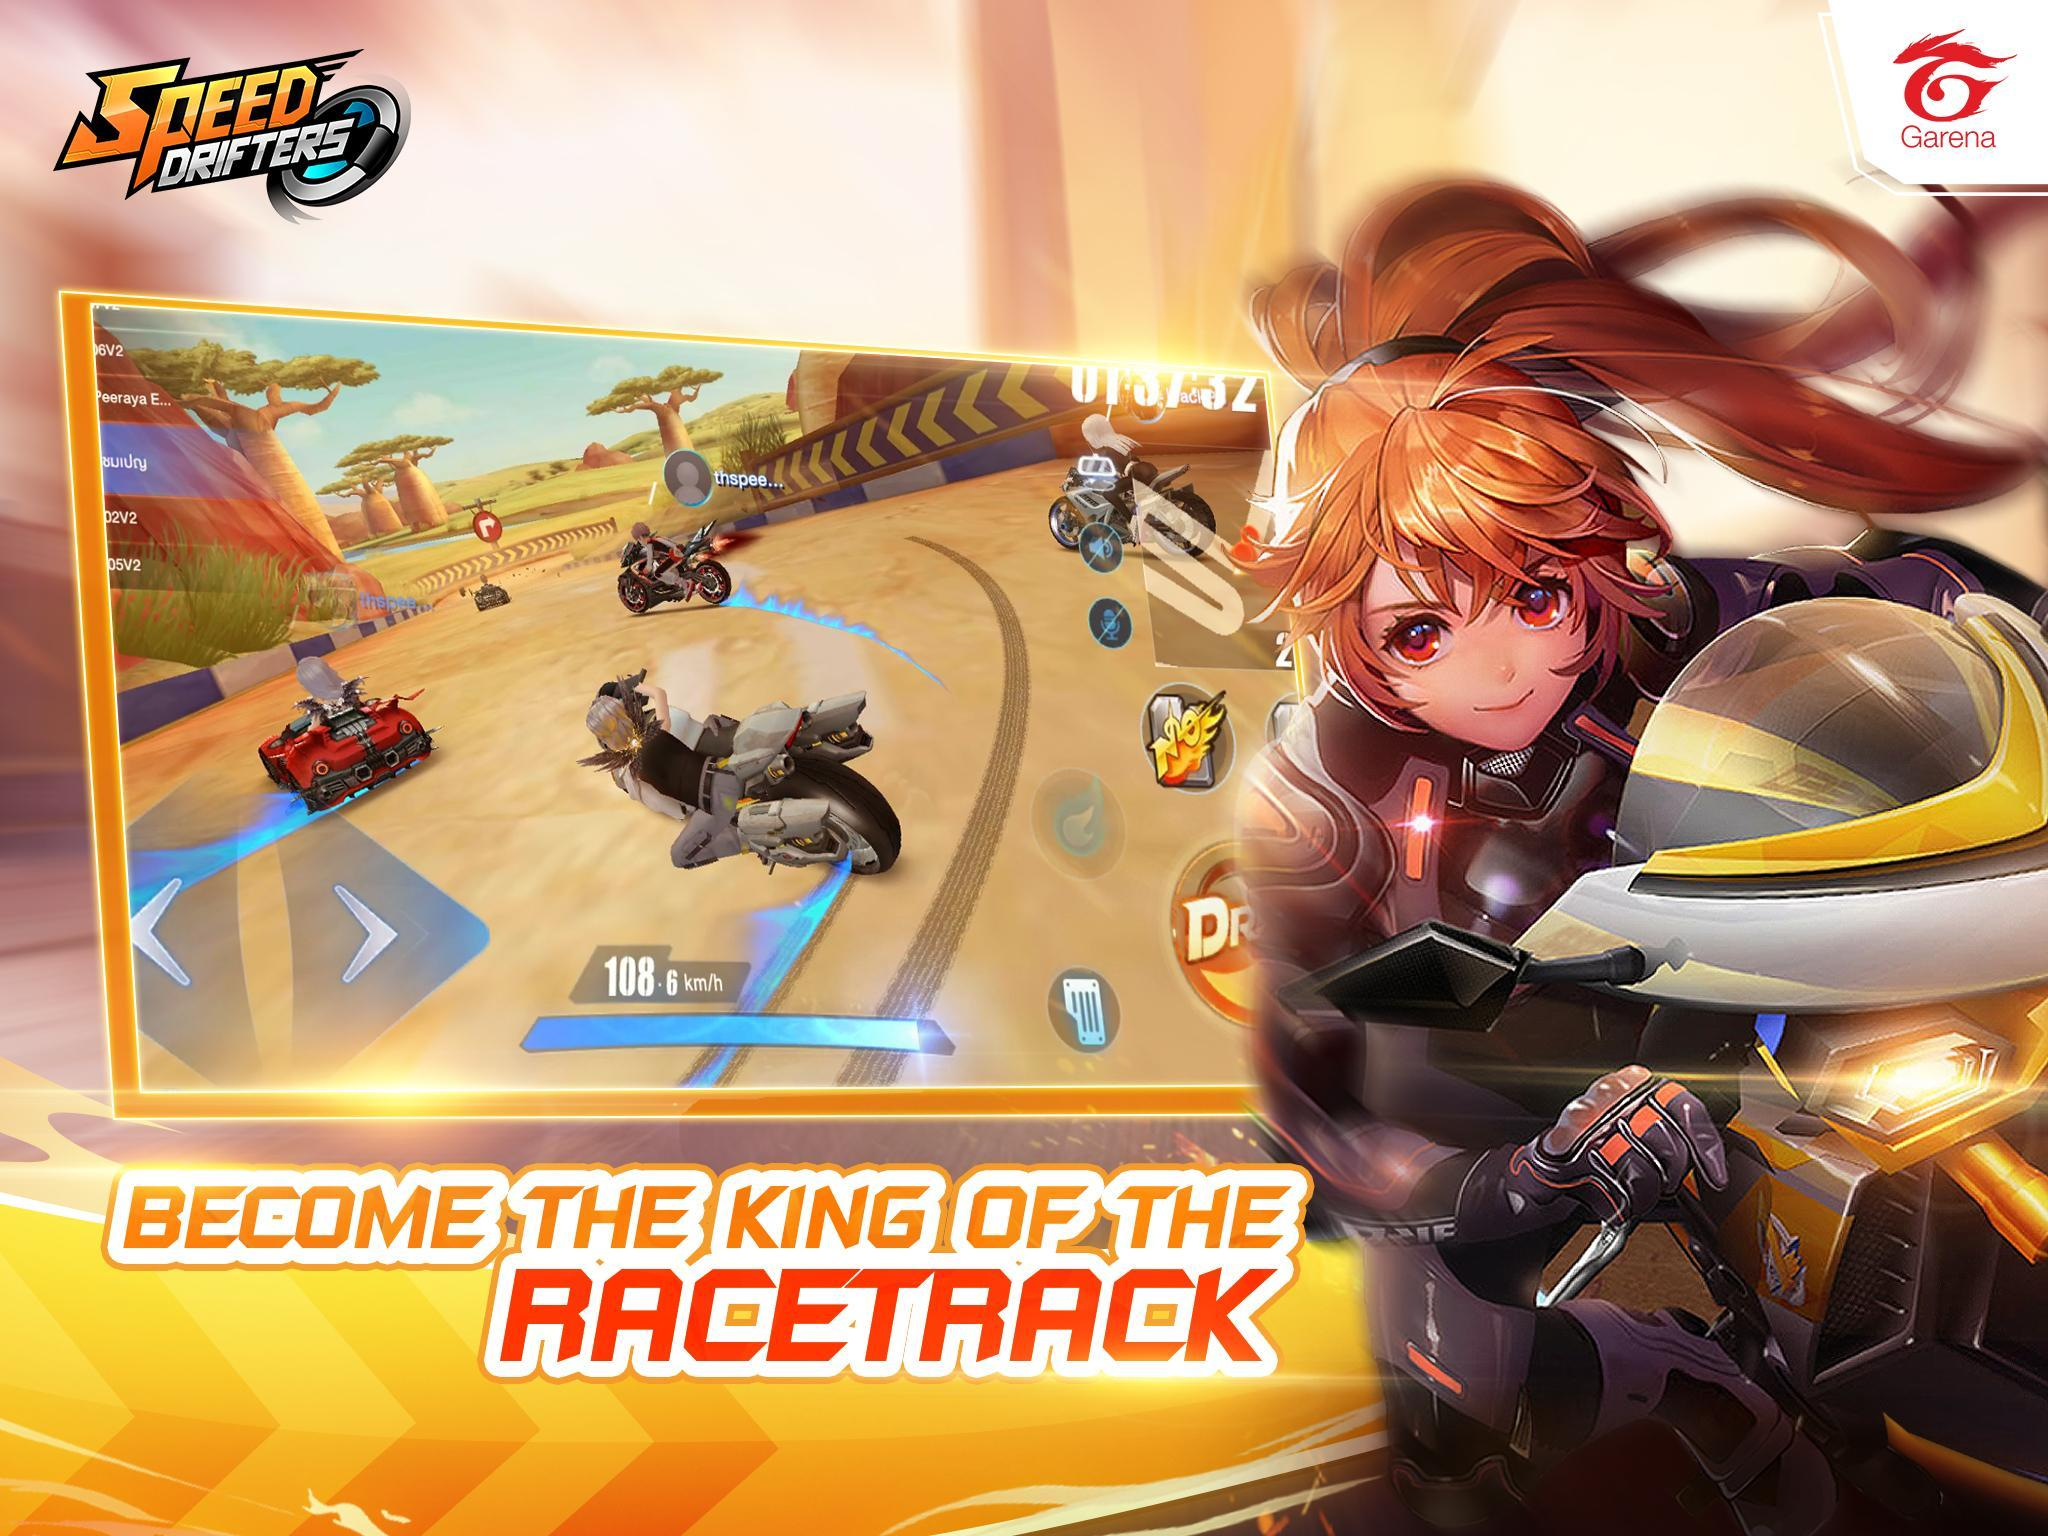 Garena Speed Drifters for Android - APK Download